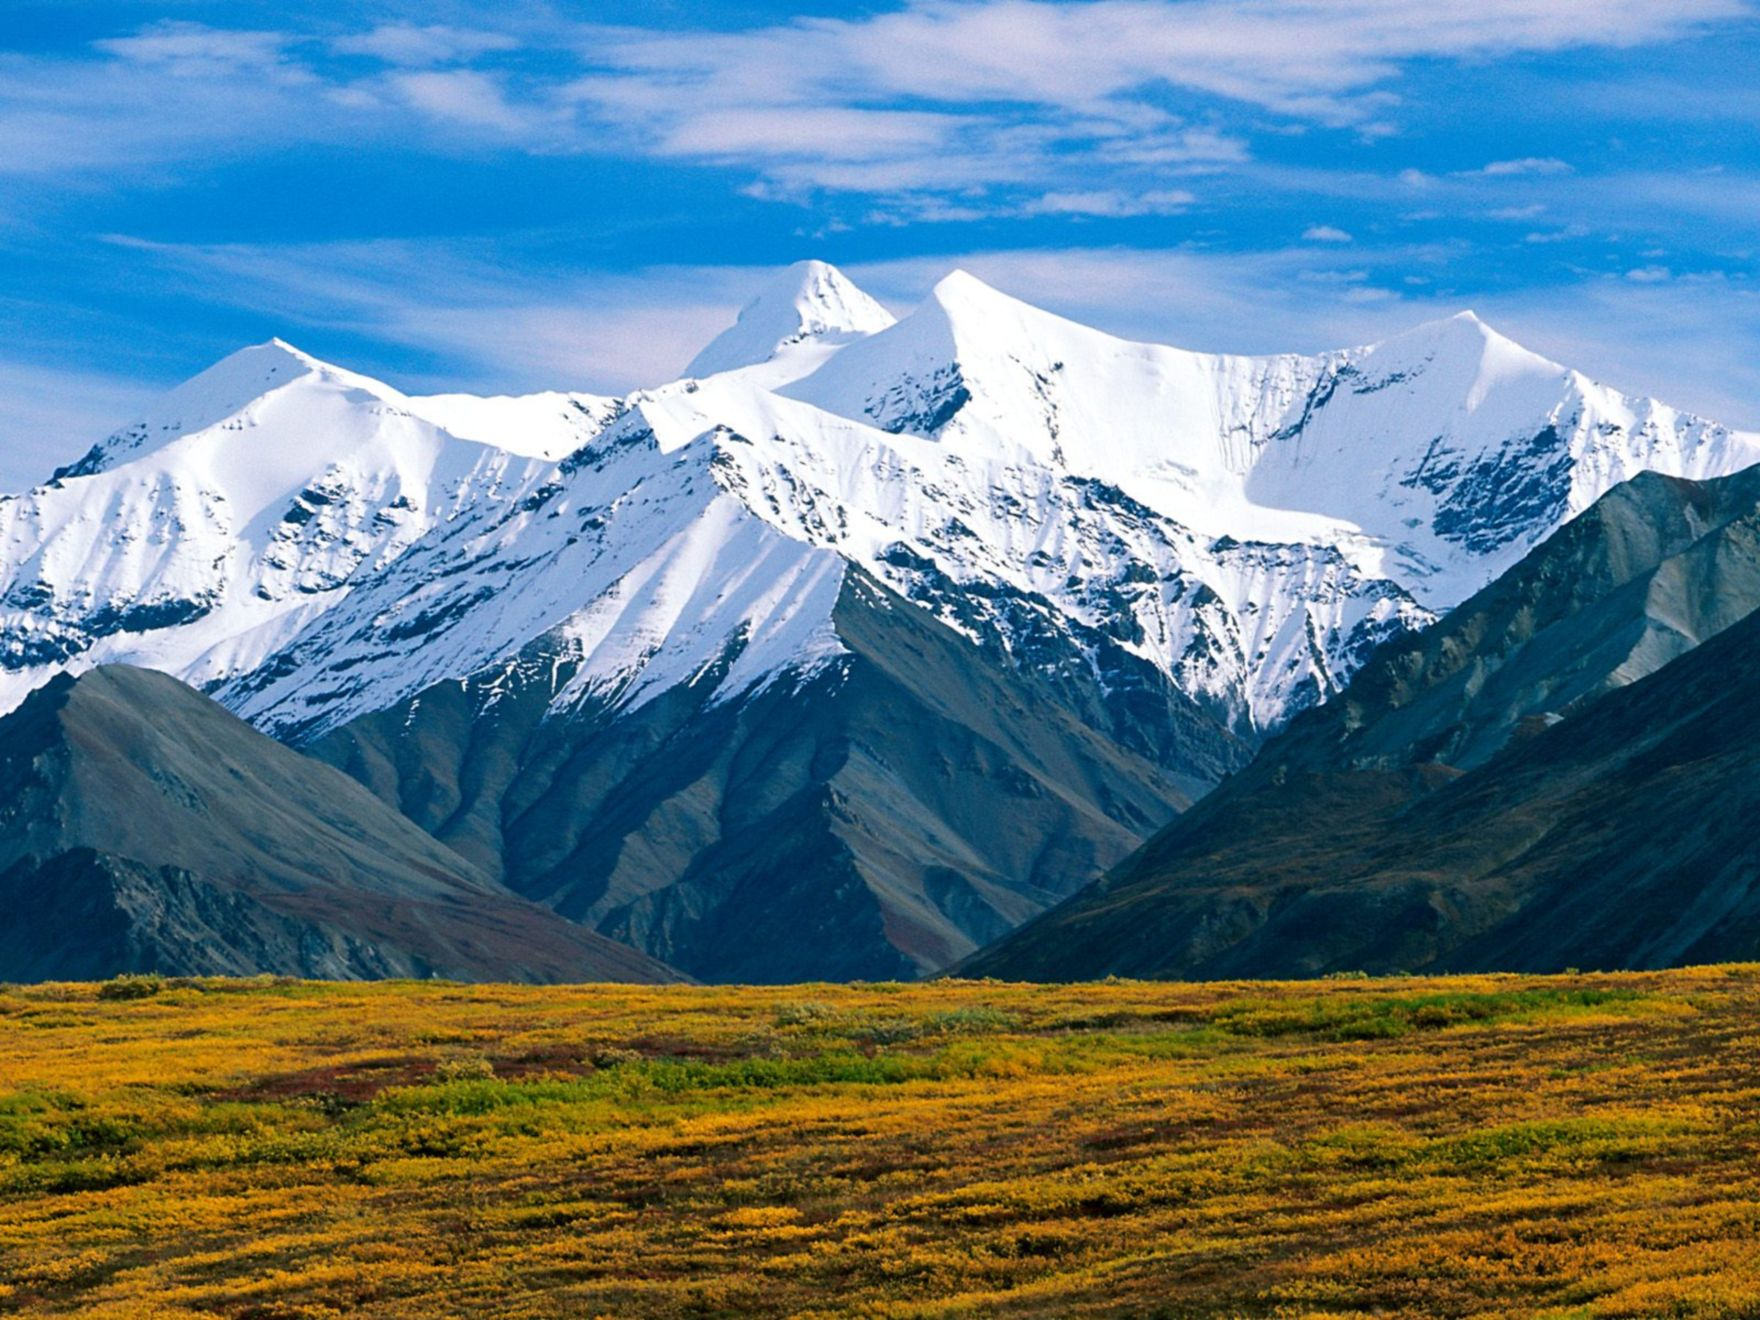 Download free HD Denali National Park Alaska Normal Wallpaper, image